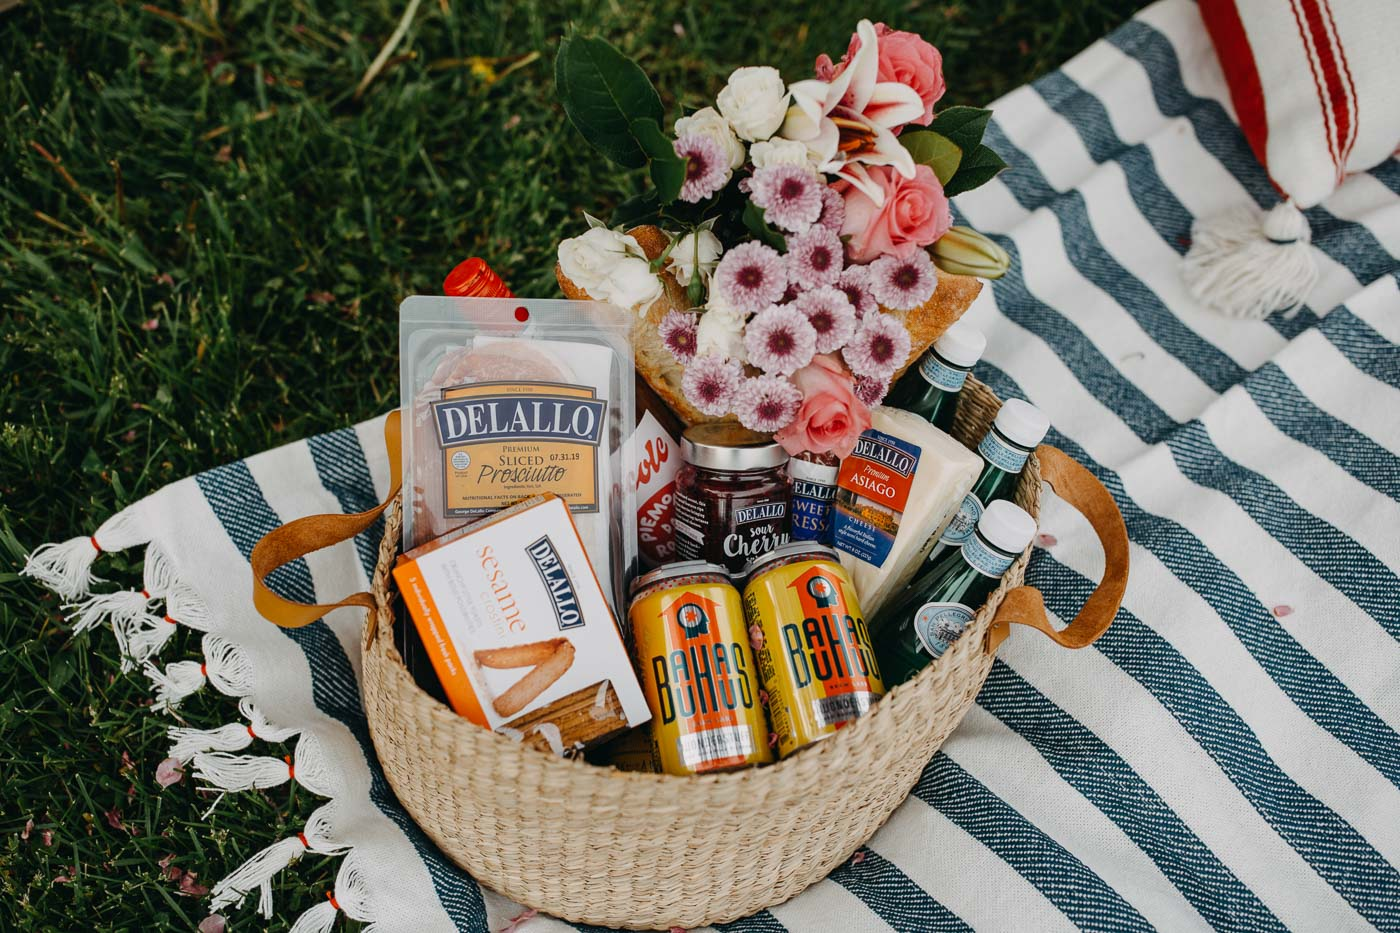 view inside summer picnic basket, which is filled with fresh flowers, wine, beer, & charcuterie board ingredients.